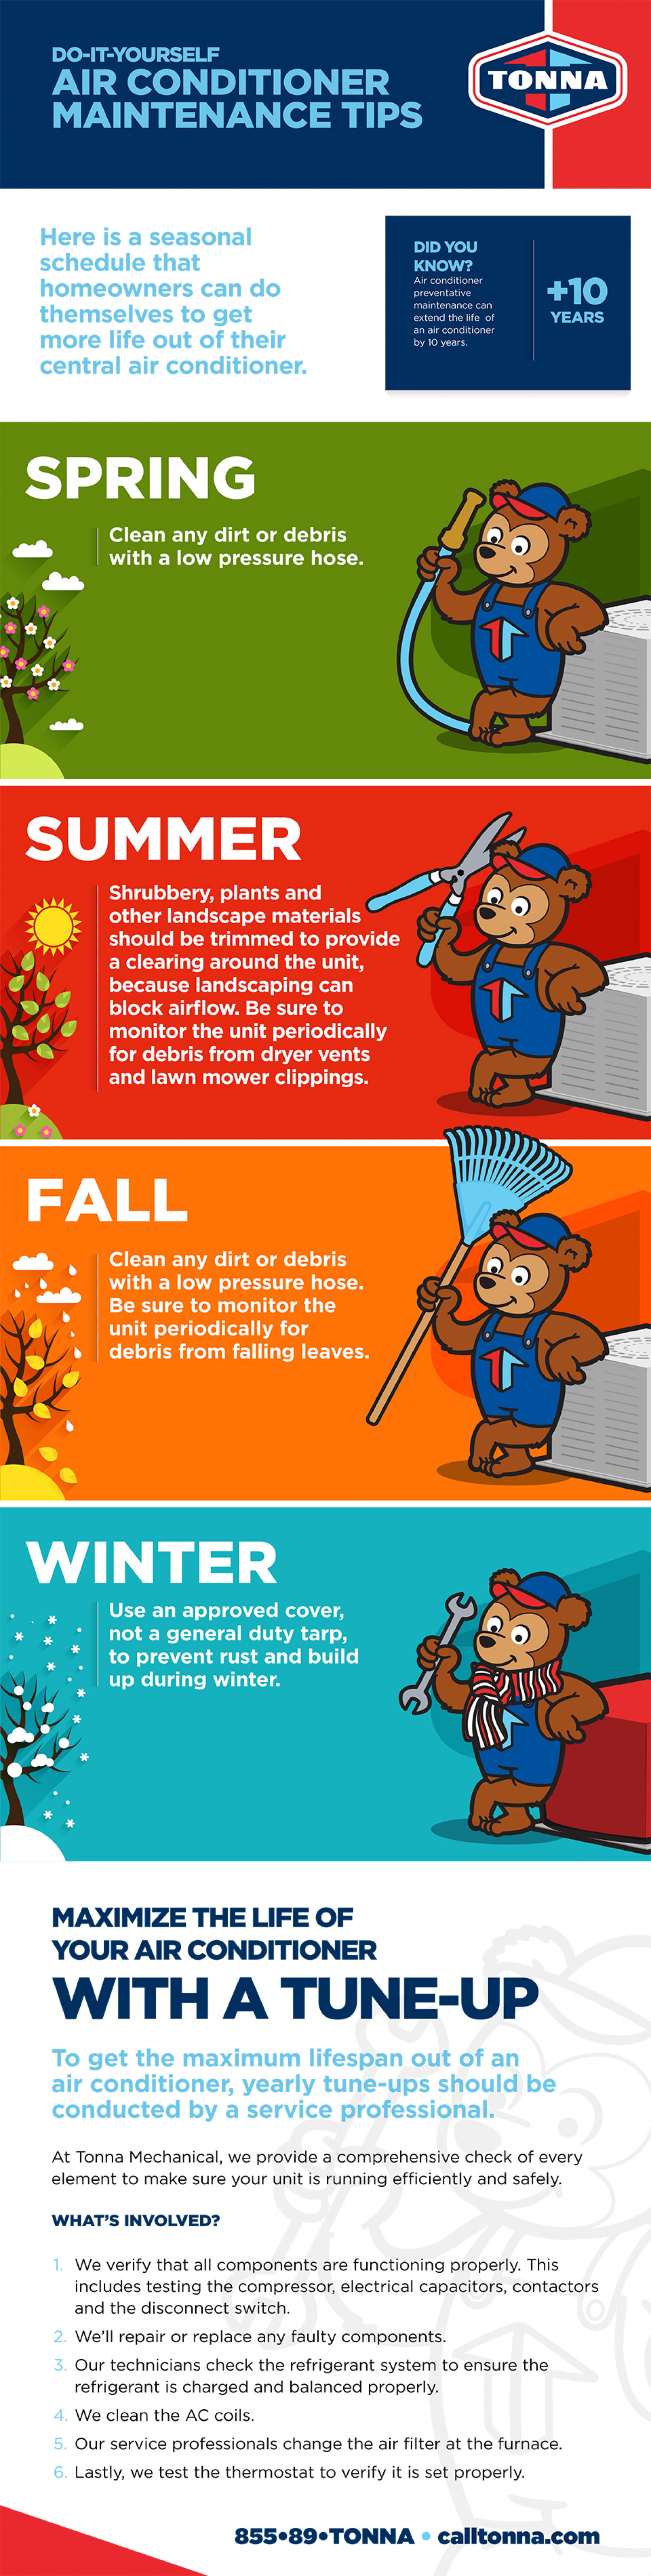 DIY Air Conditioner Maintenance Tips for All Seasons Infographic